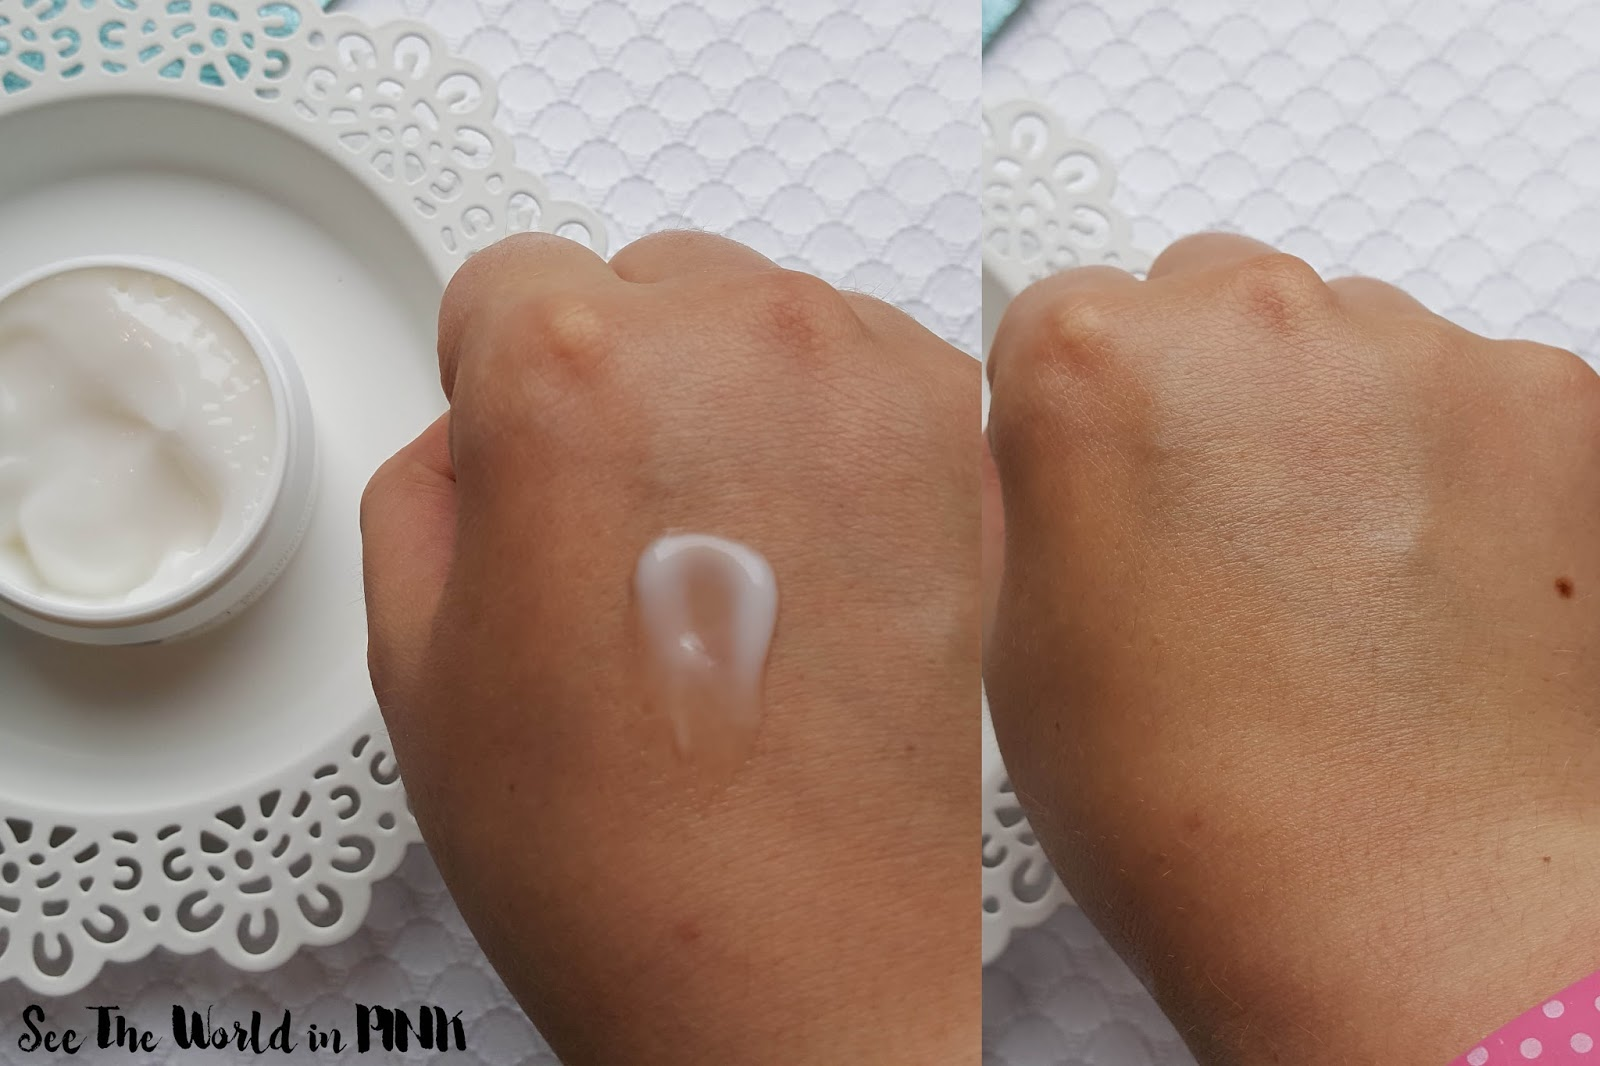 New Nivea 2-in-1 Moisturizing Primer Review